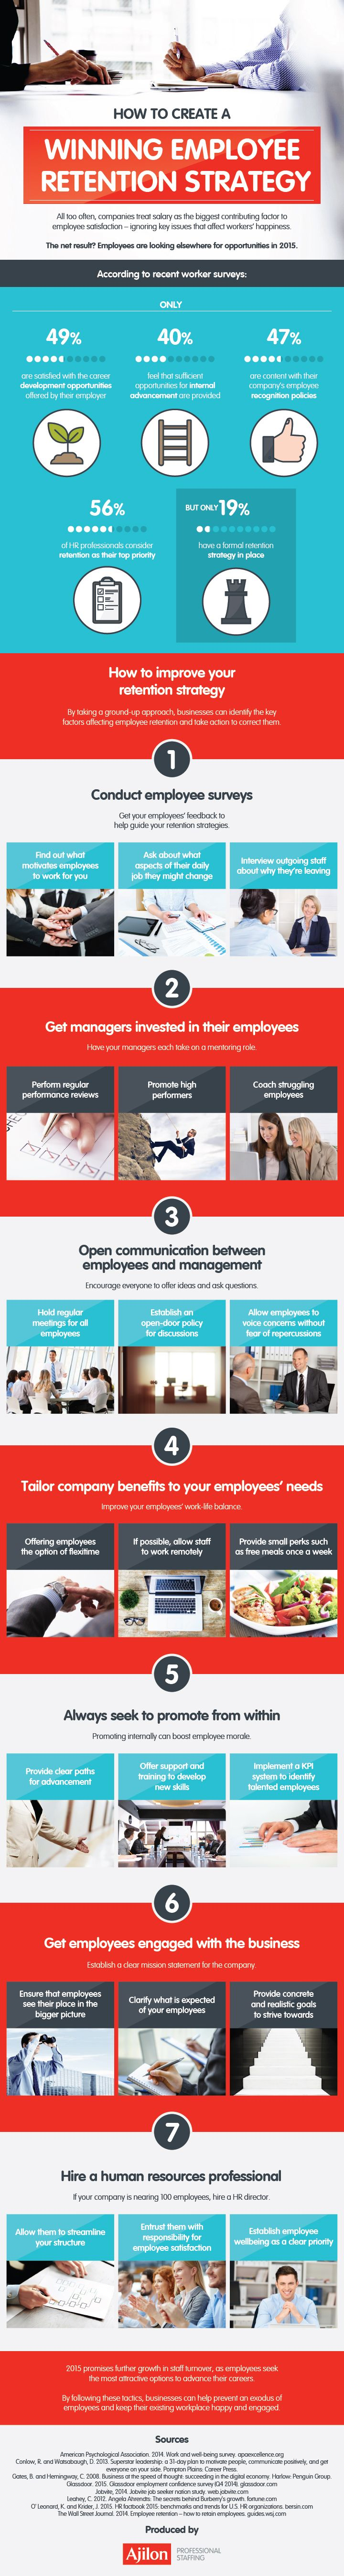 How To Creat A Winning Employee Retention Strategy - Infographic